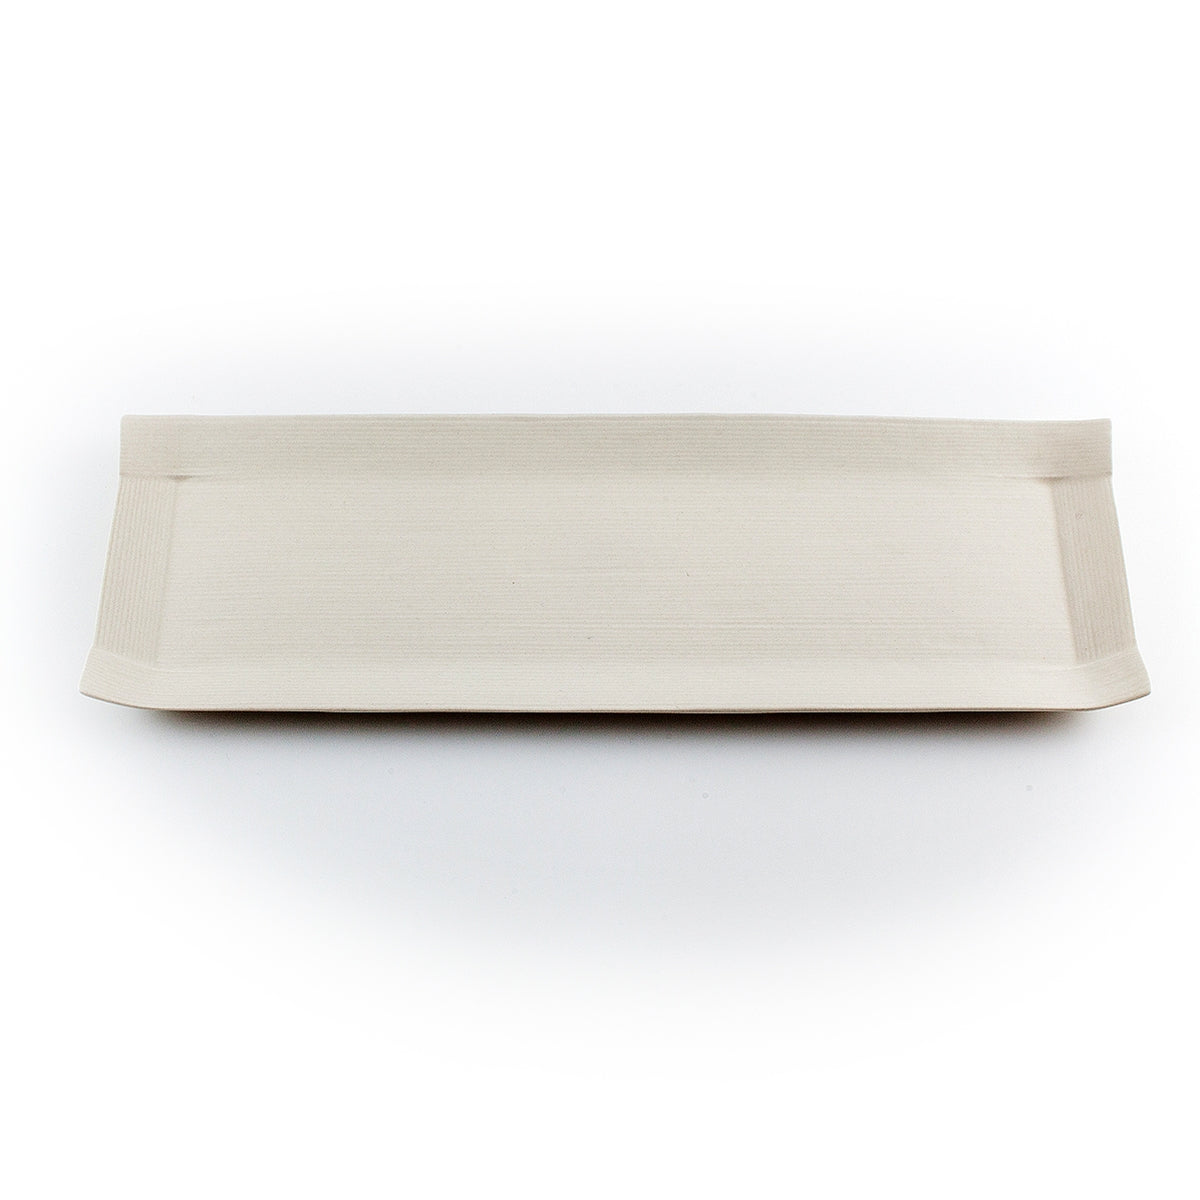 "Ivory Paper-Like Plate 14.37"" x 4.76"""